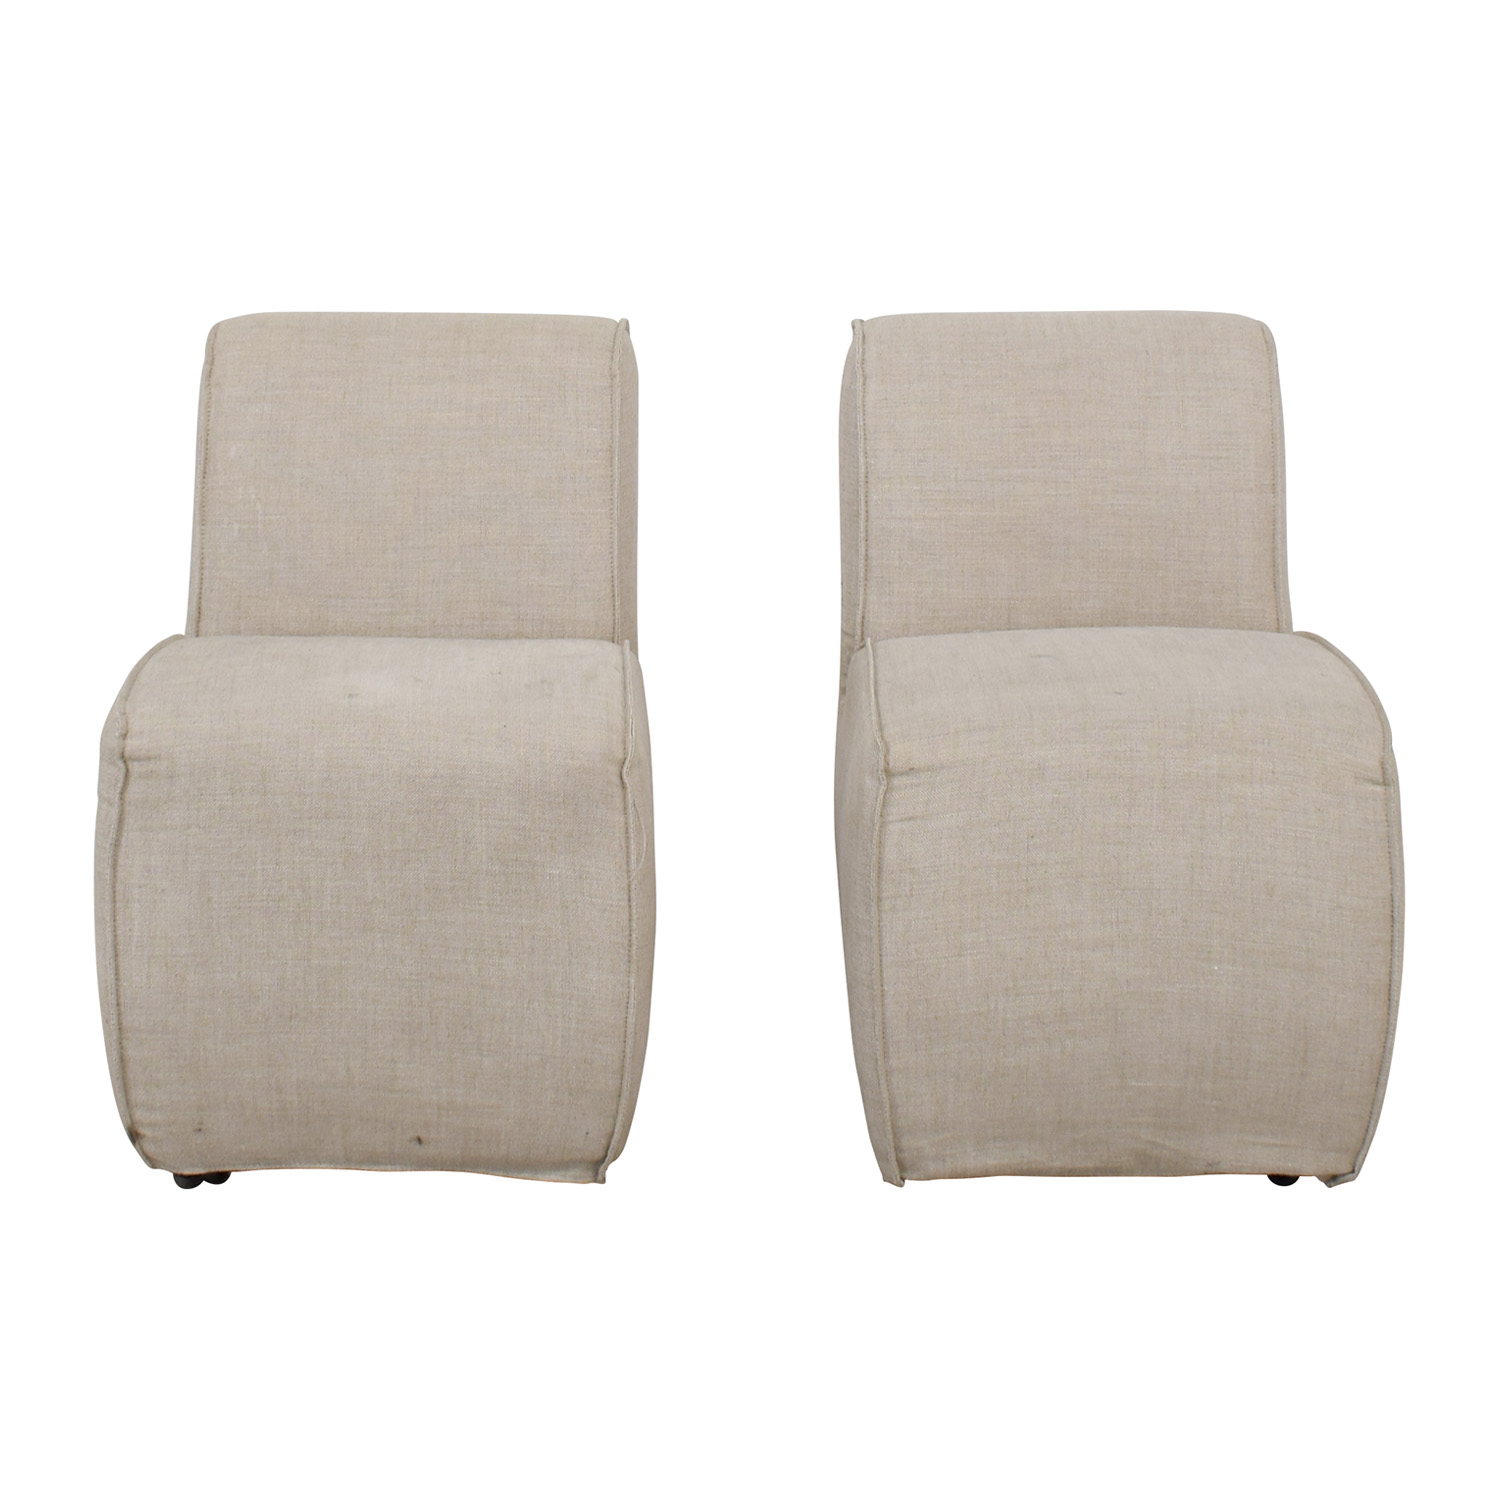 shop Eichholtz Grey Upholstered Dining Chairs Eichholtz